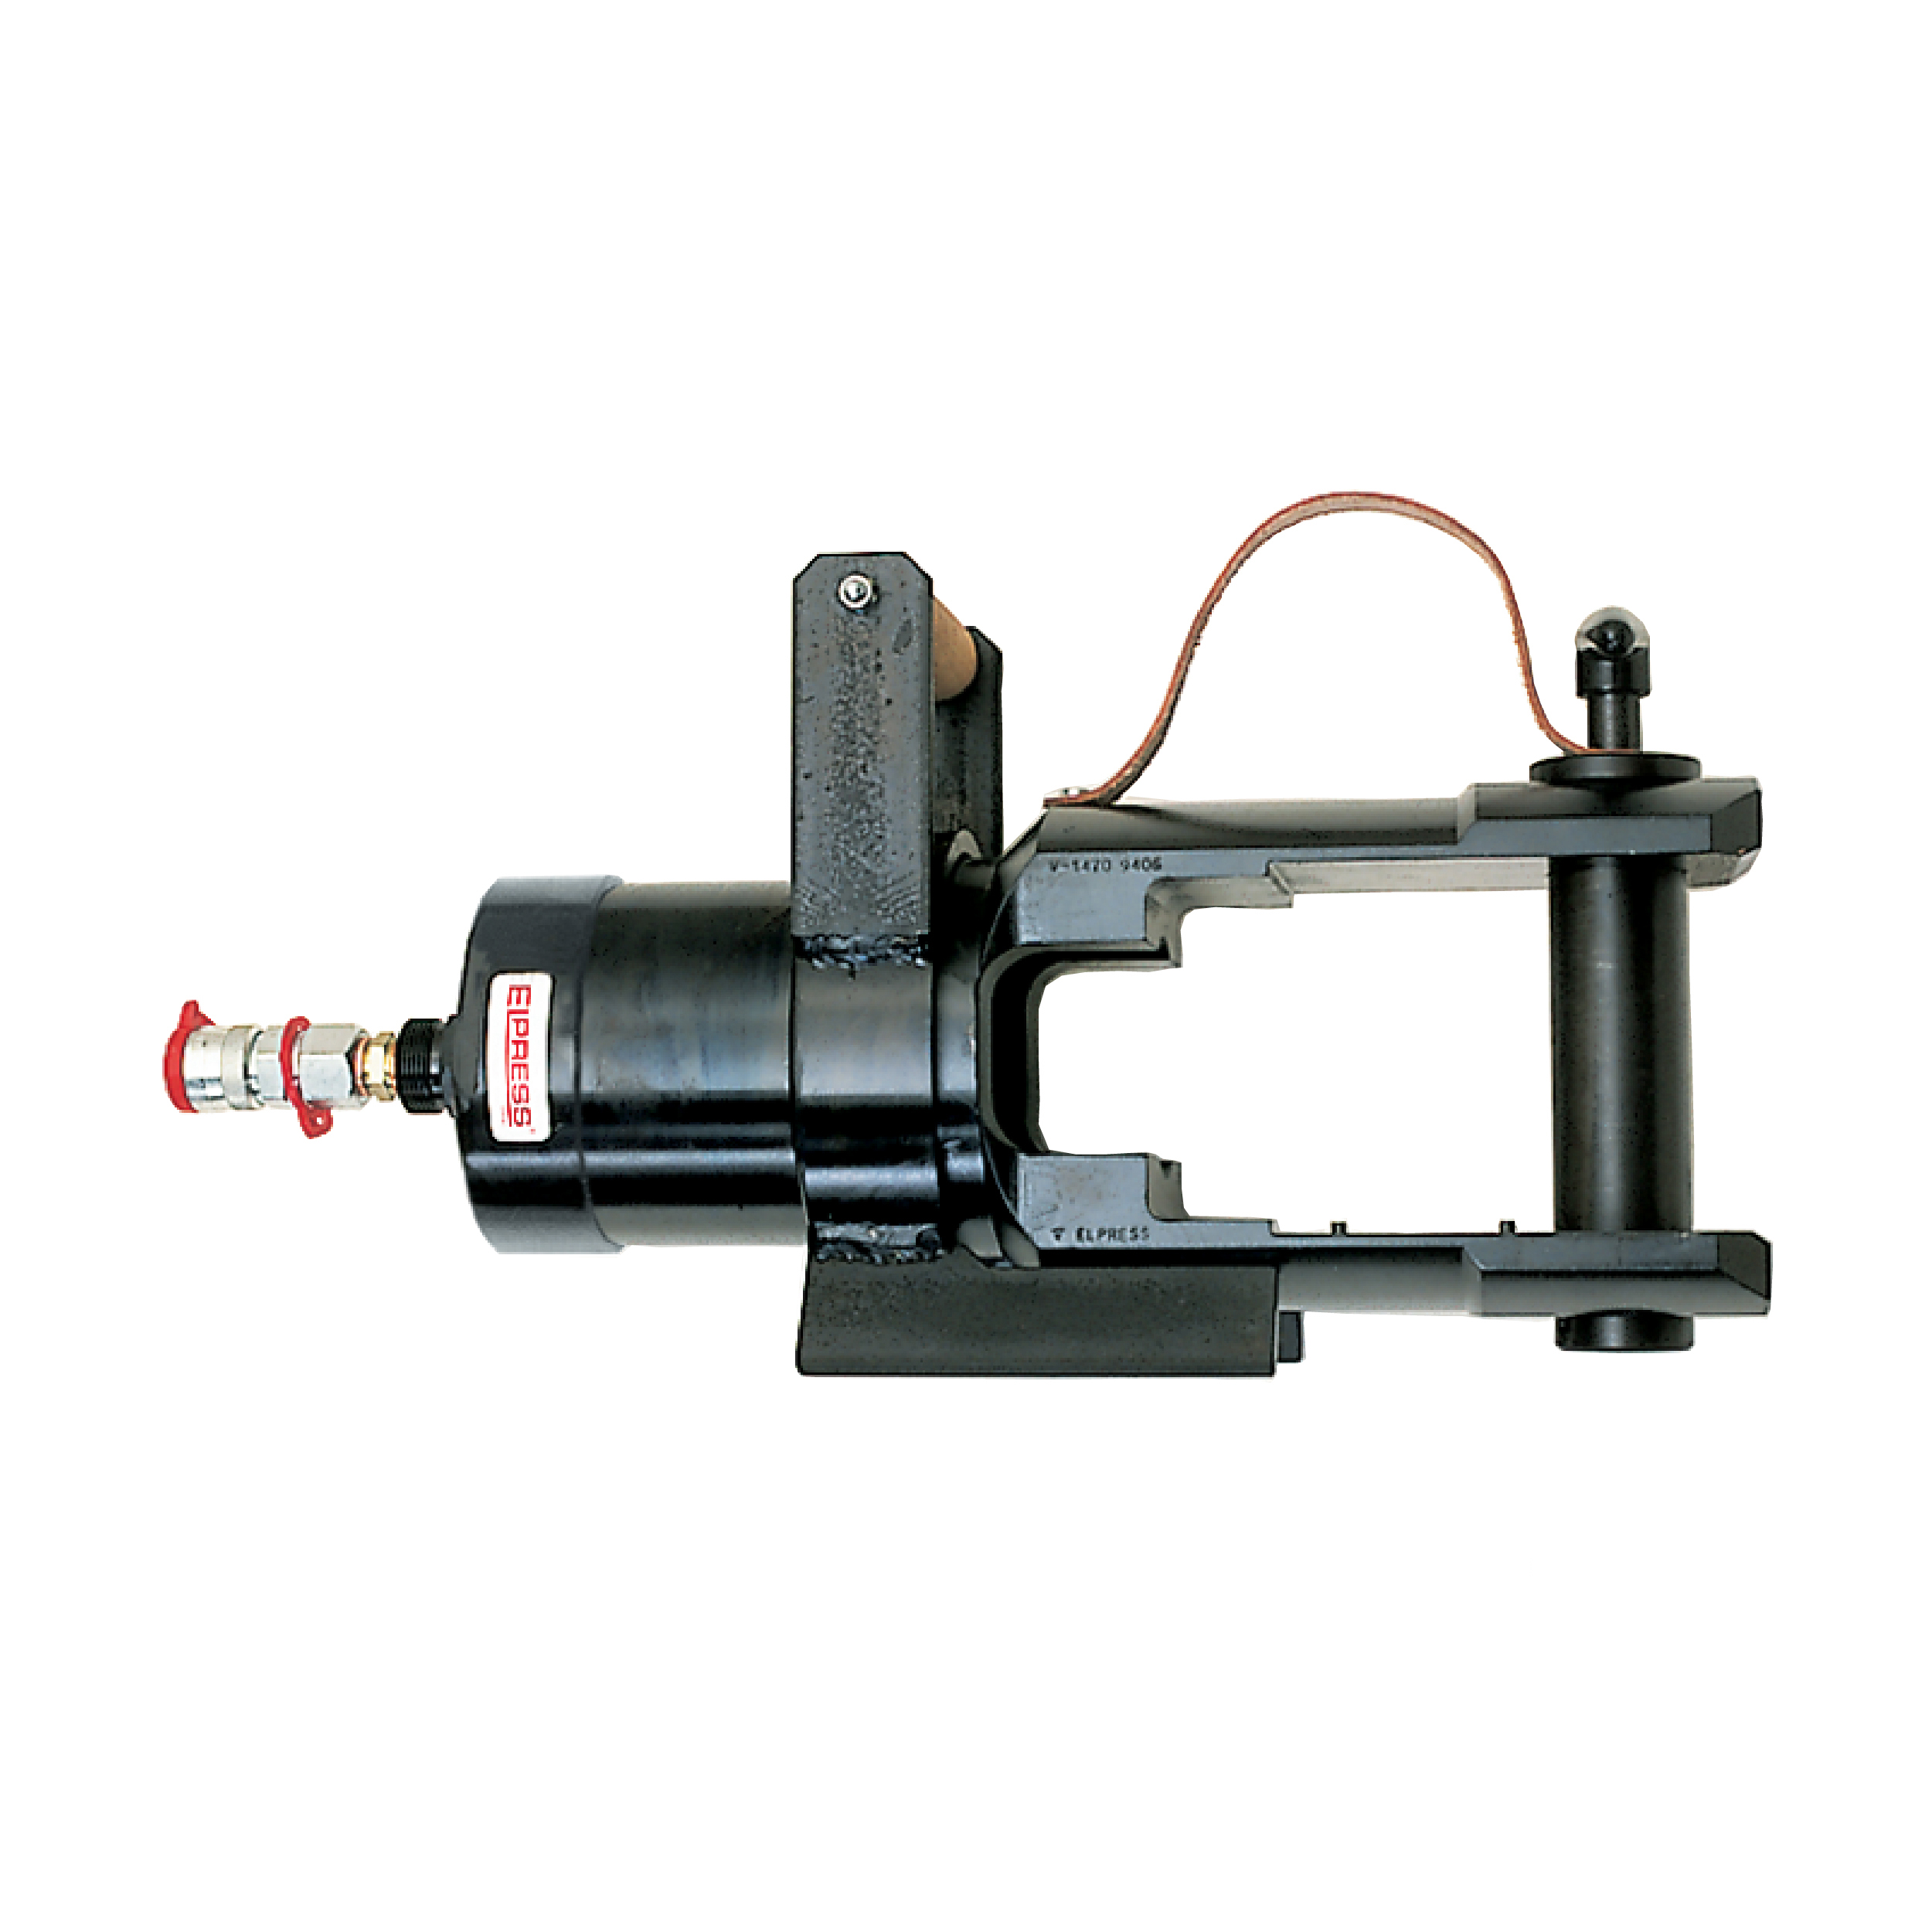 Elpress Crimp Tool V1470 Head for Cu Terminals and Connectors (Range 500-1000mm²), Al Terminals and Connectors (Range 800-1200mm²) and C-sleeves (185-300mm²)